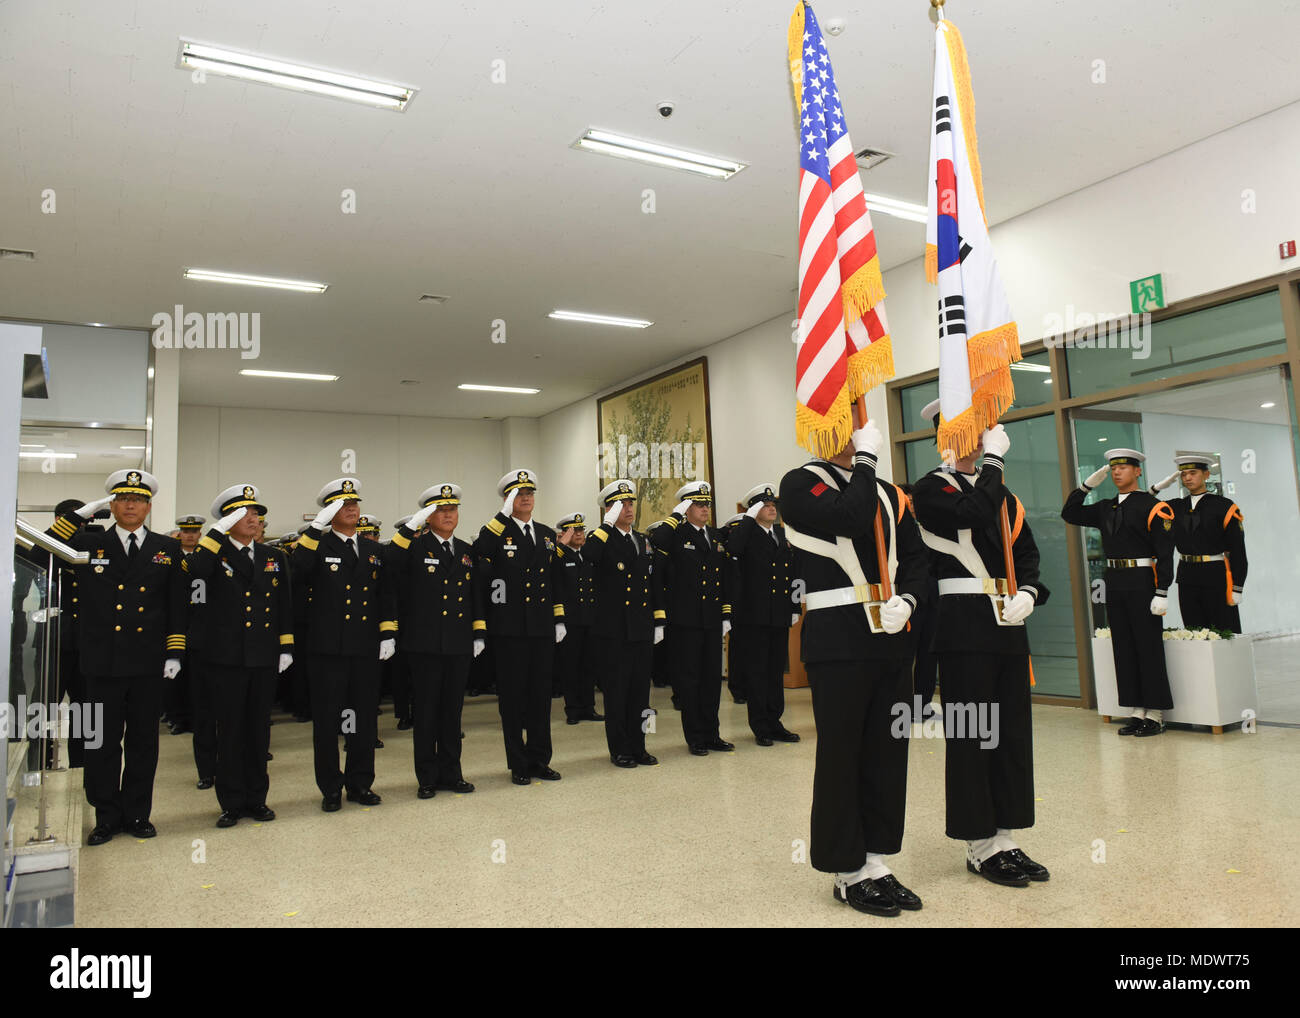 171207-N-TB148-042 CHINHAE, Republic of Korea (Dec. 07, 2017) Rear Adm. Brad Cooper, commander, U.S. Naval Forces Korea (CNFK), attends the unveiling of the Capt. Michael Lousey memorial bust unveiling ceremony at Republic of Korea (ROK) Naval Academy in Chinhae. CNFK is the U.S. Navy's representative in the ROK, providing leadership and expertise in naval matters to improve institutional and operational effectiveness between the two navies and to strengthen collective security efforts in Korea and the region. (U.S. Navy photo by Mass Communication Specialist Seaman William Carlisle) Stock Photo